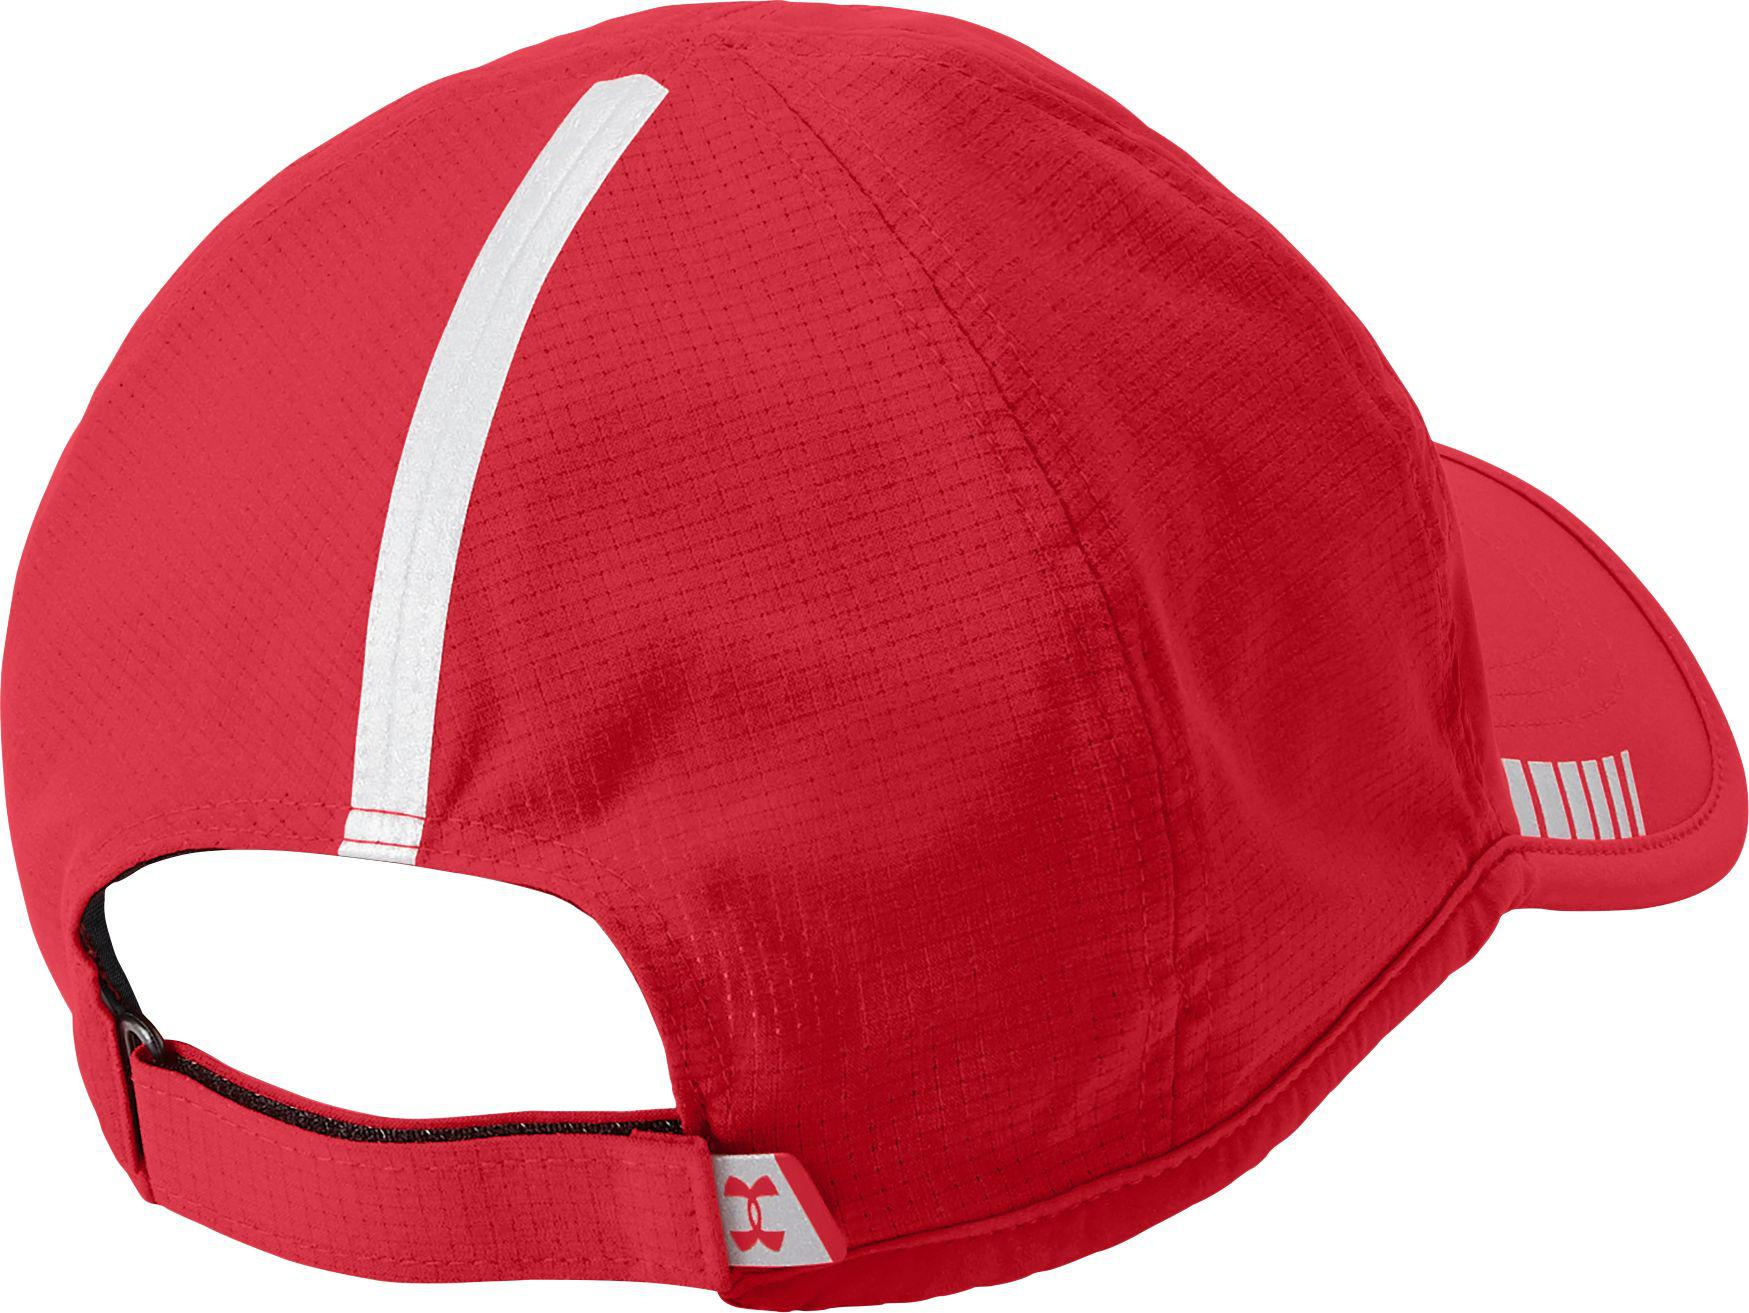 Lyst - Under Armour Launch Armourvent Running Hat in Red for Men 08dfcb482b9e